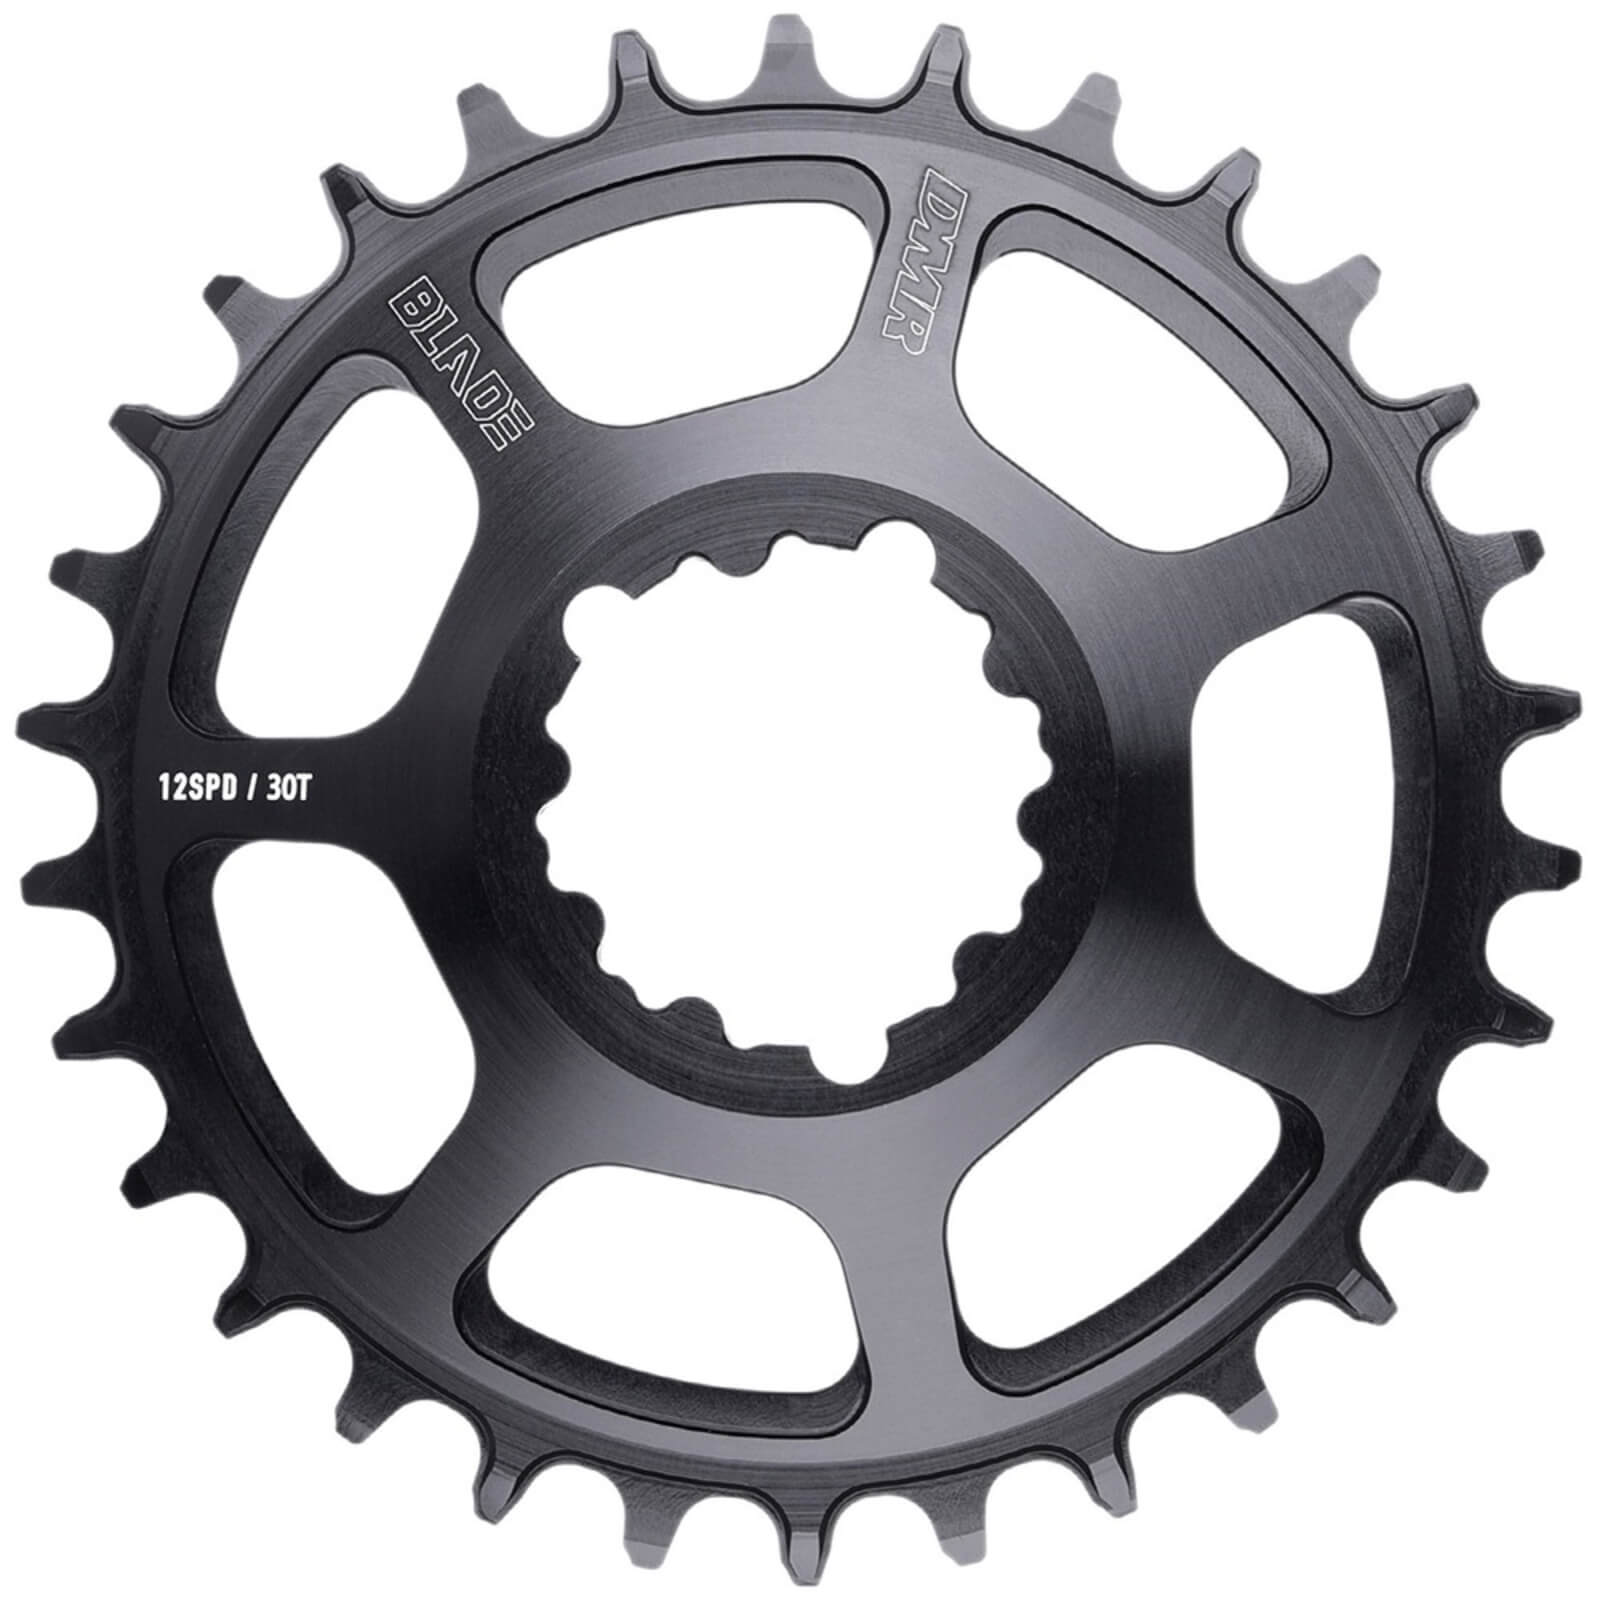 Dmr Blade 12 Speed Direct Mount Chain Ring - 32t - Non-boost